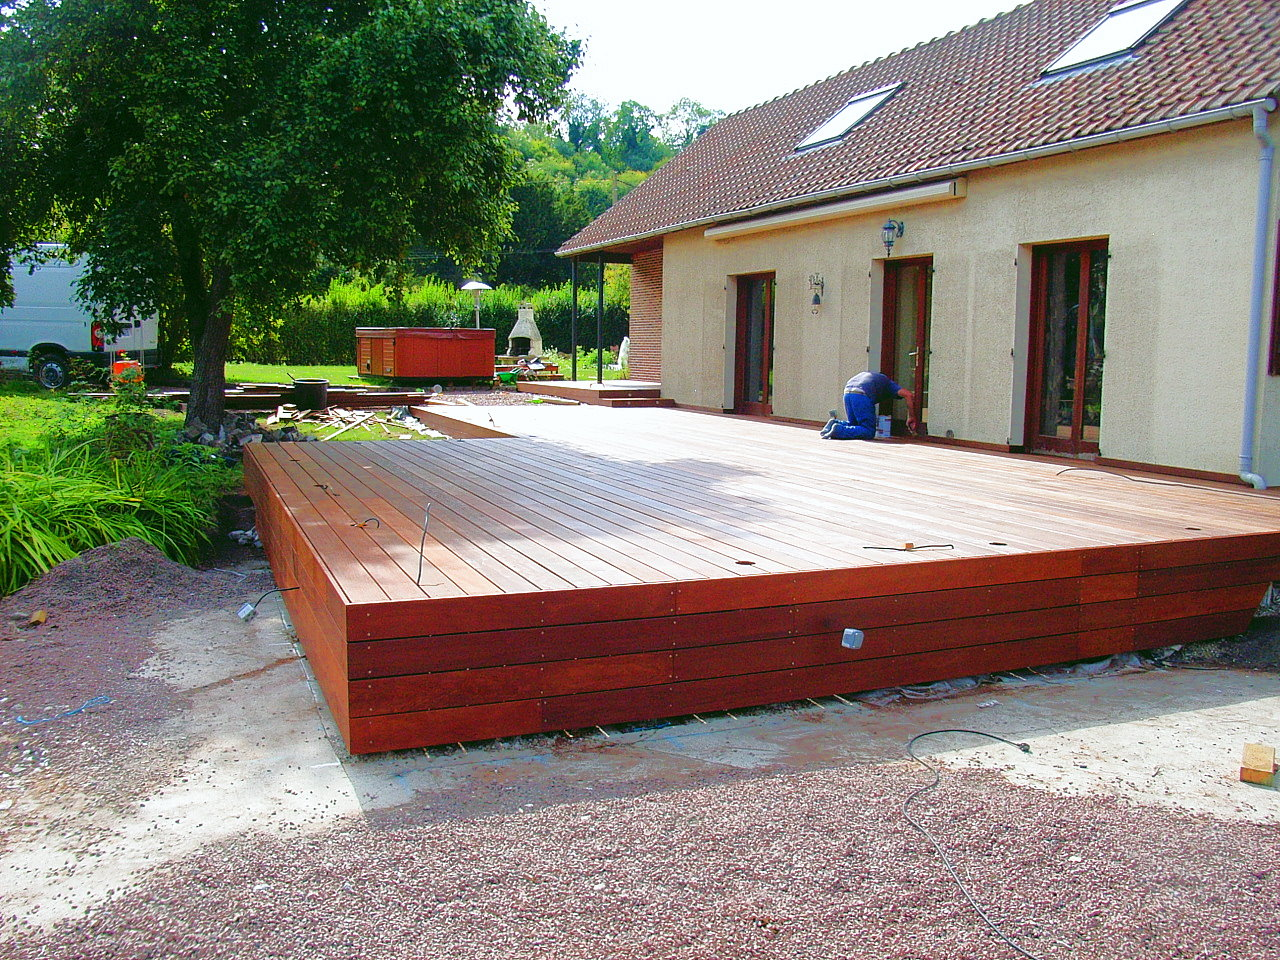 Construire Une Terrasse En Bois Pictures to pin on Pinterest